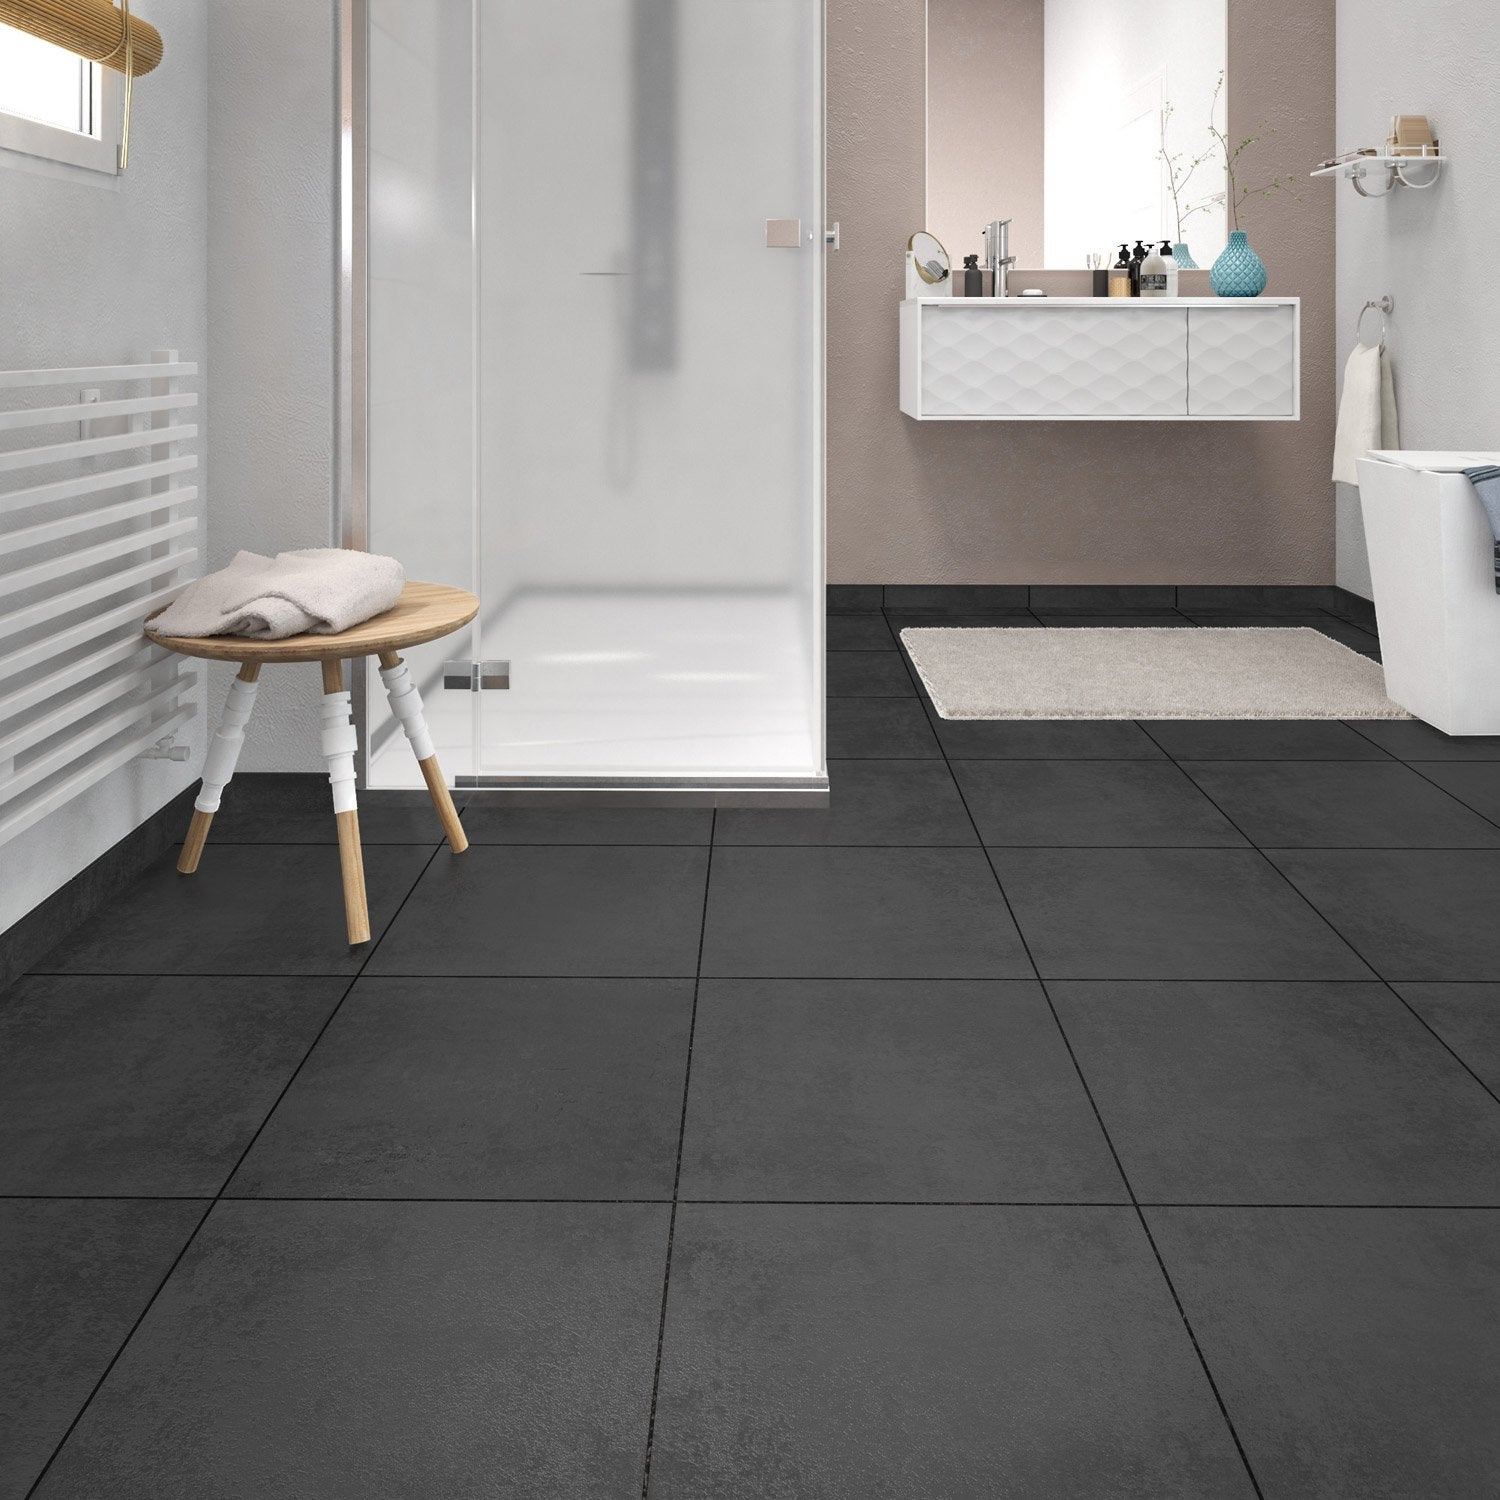 Carrelage noir brillant leroy merlin affordable credence for Carrelage salle de bain noir